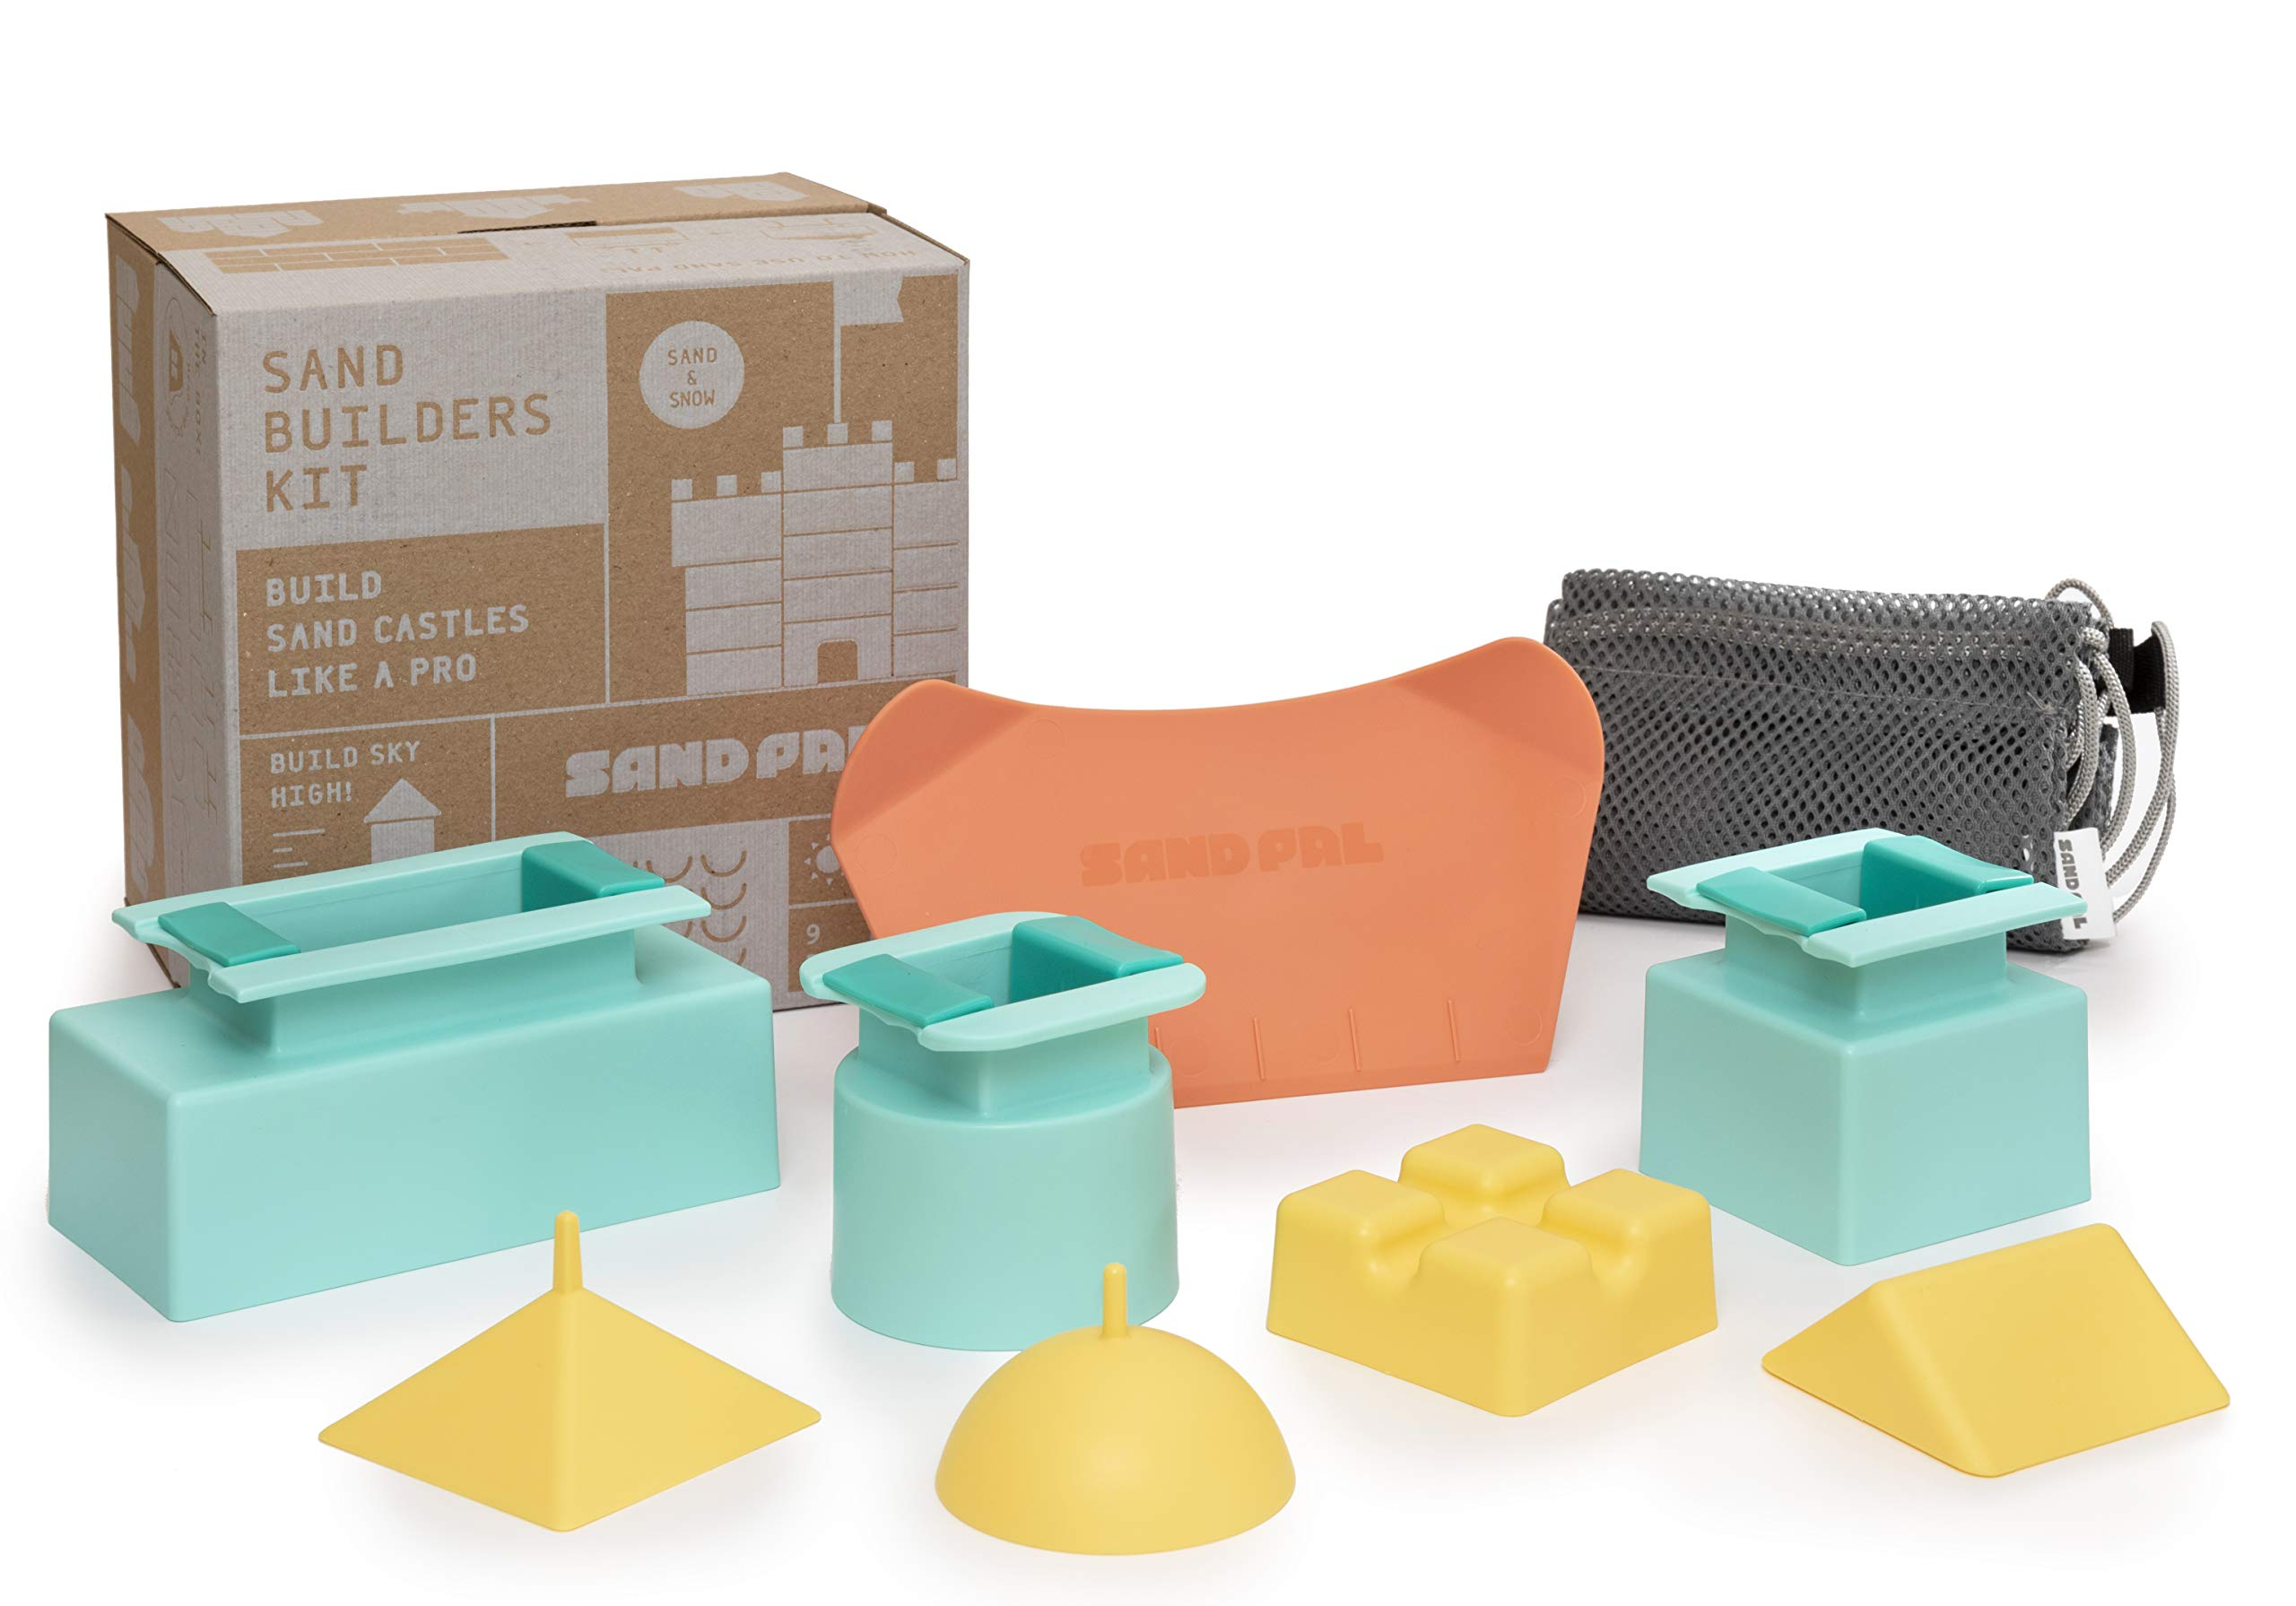 Sand Pal Beach Sand & Snow Castle Building Kit, 9-Piece Brick Maker and Toy Set, Construction Shape Molds for Girls and Boys Summer & Winter Fun for Toddlers to Teens and Adults, with Carrying Case by Sand Pal